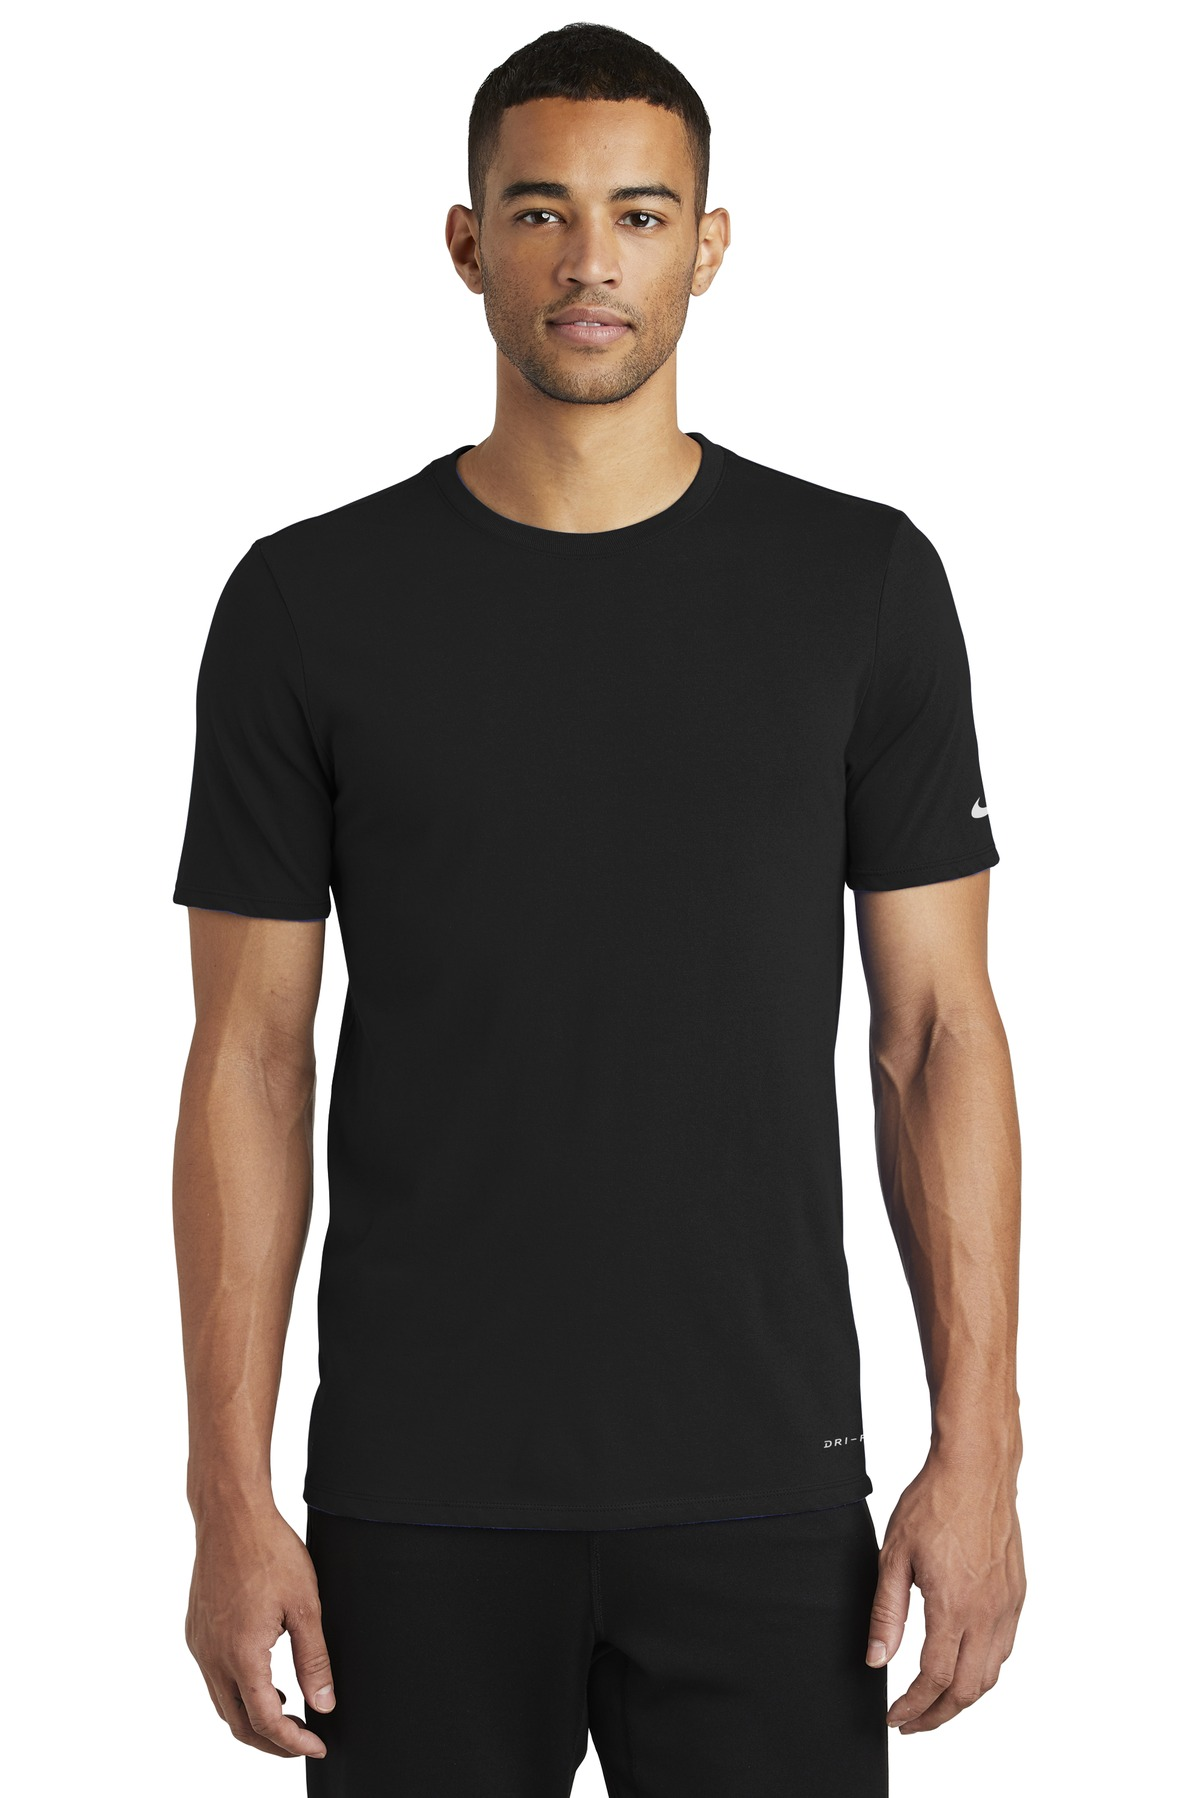 Nike Dri-FIT Cotton/Poly Tee. NKBQ5231 - Black